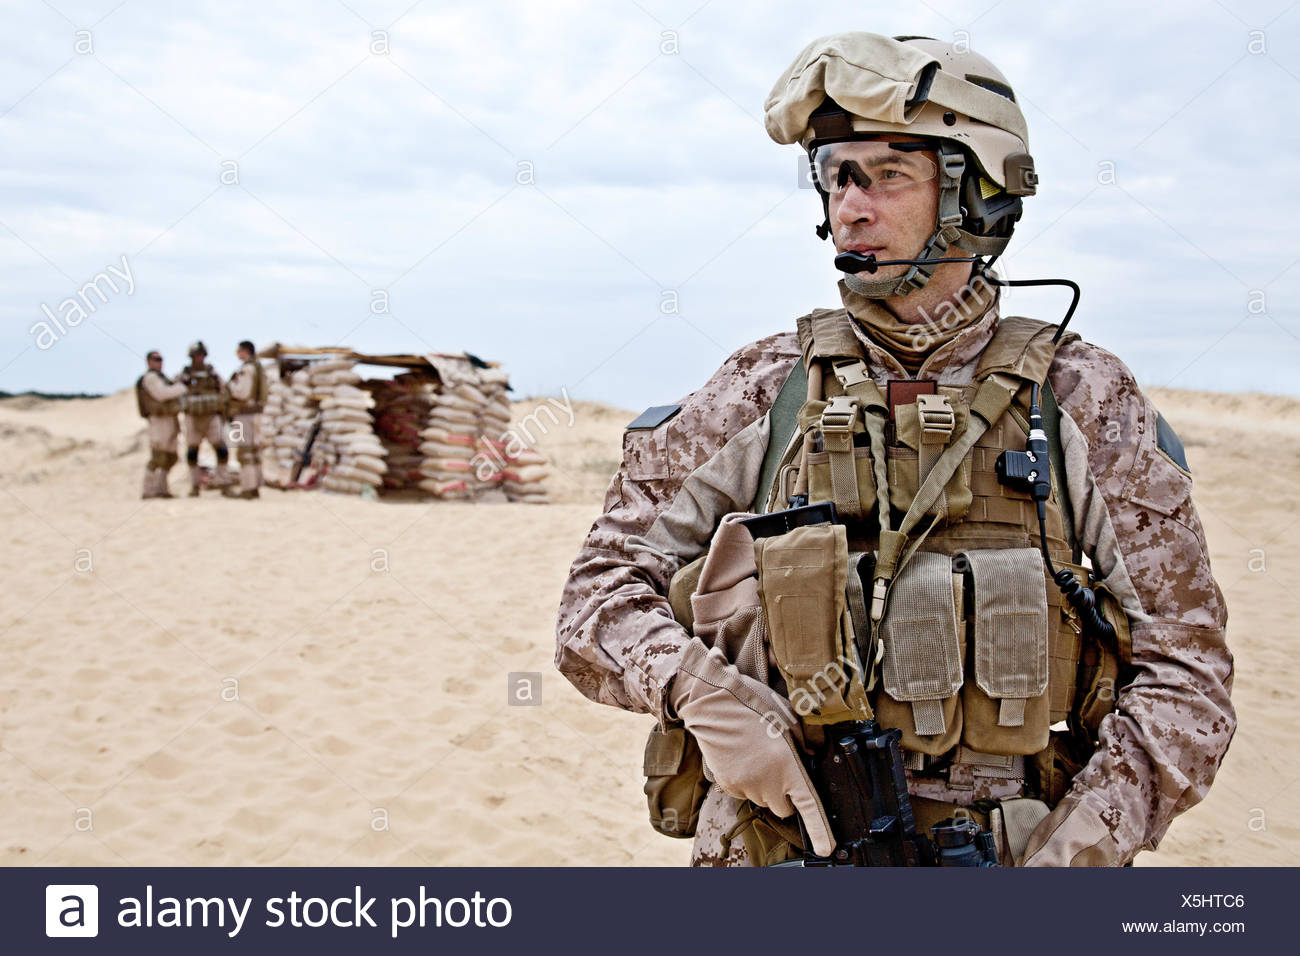 desert wasteland american army usa war soldier uniform spectacles glasses  eyeglasses heat helmet military navy marine goggles Stock Photo - Alamy